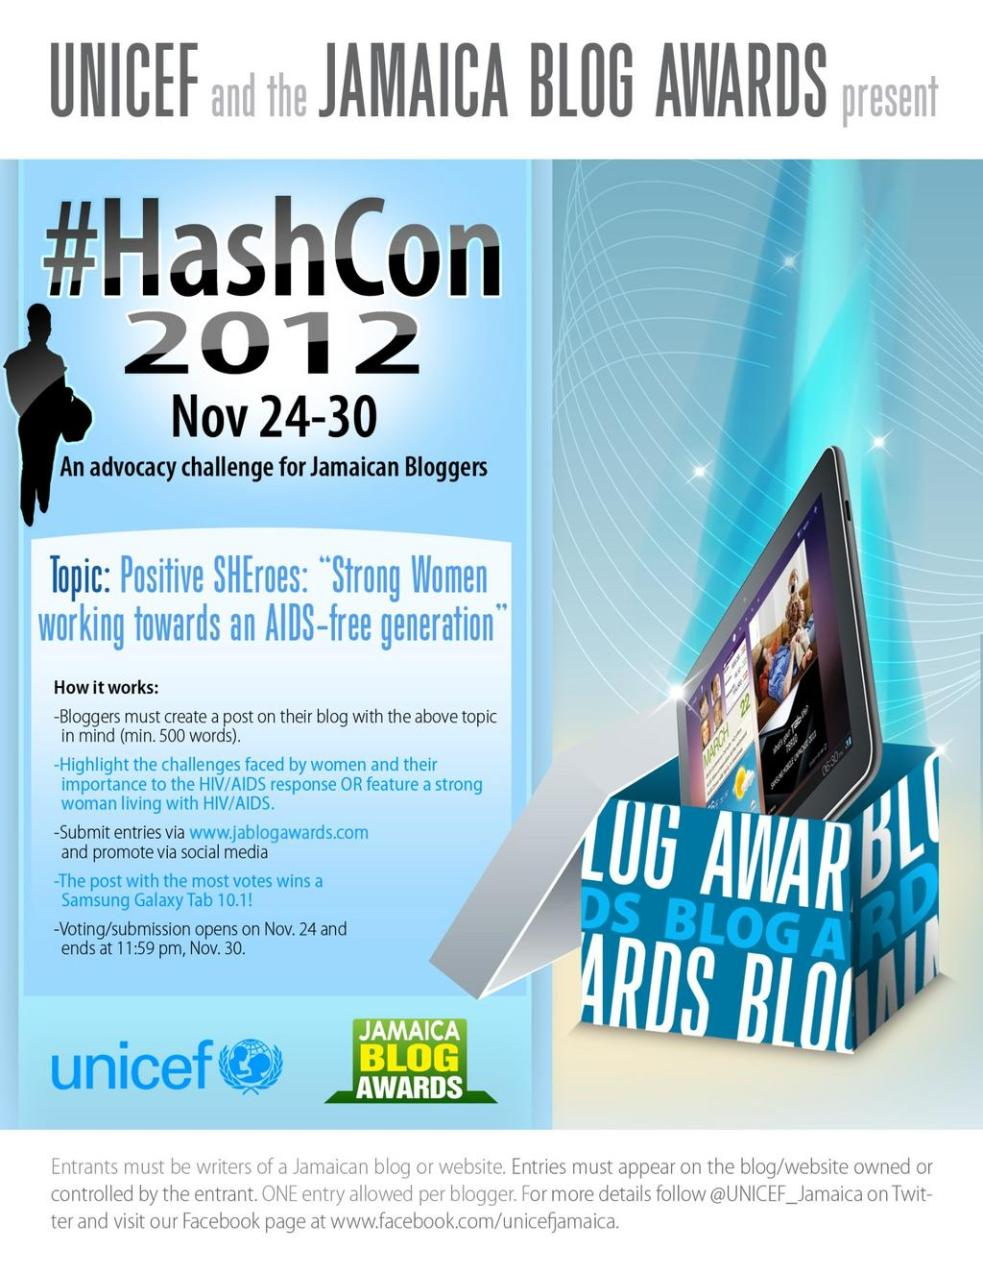 UNICEF JA launches #HashCon2012: An Advocacy Challenge for Jamaican Bloggers